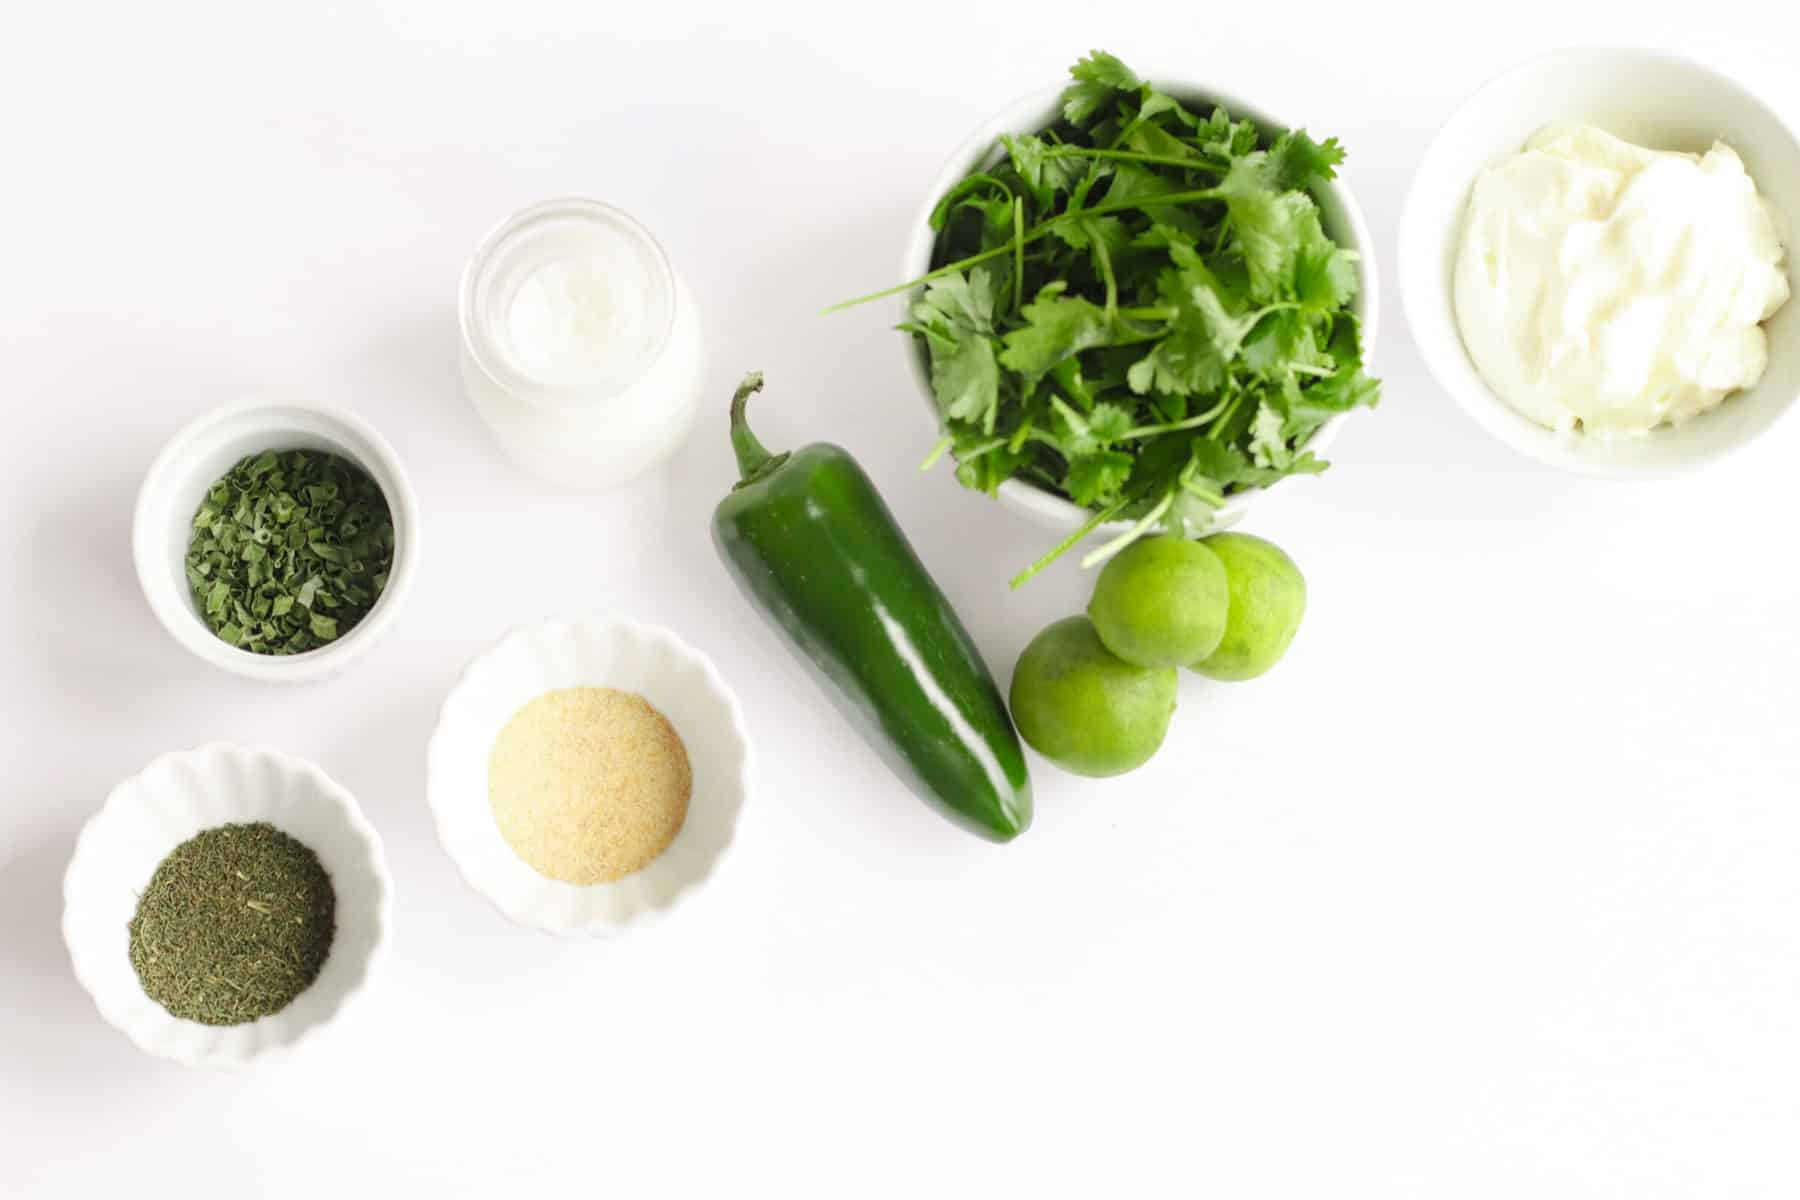 bowls of chives, dill, garlic powder, milk, mayonnaise, cilantro, limes, and jalapeno on a white tabletop